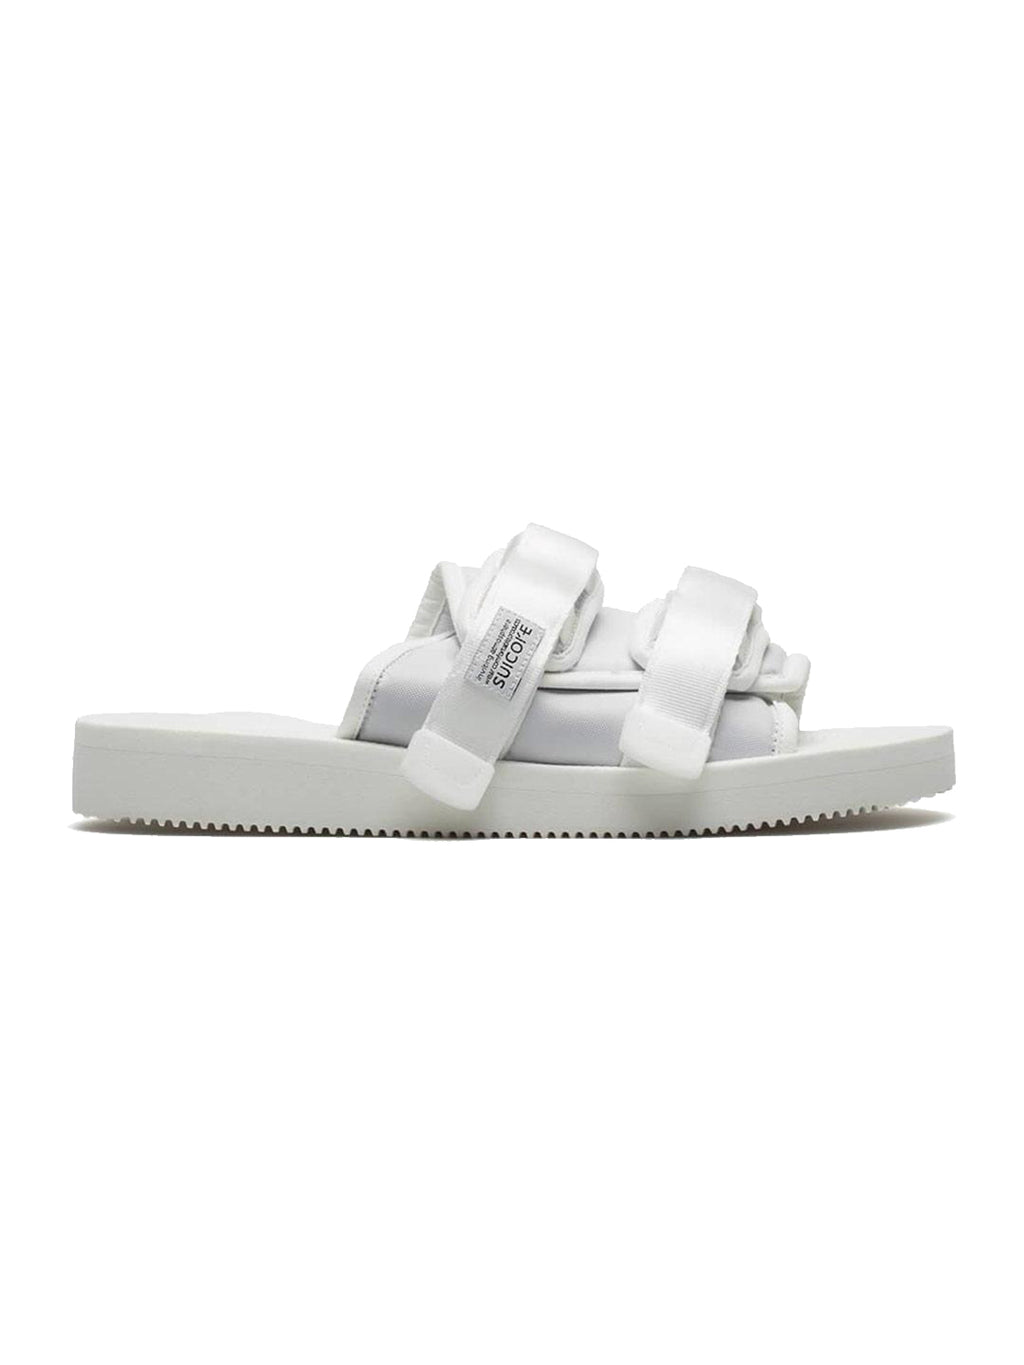 White Moto Cab Sandals